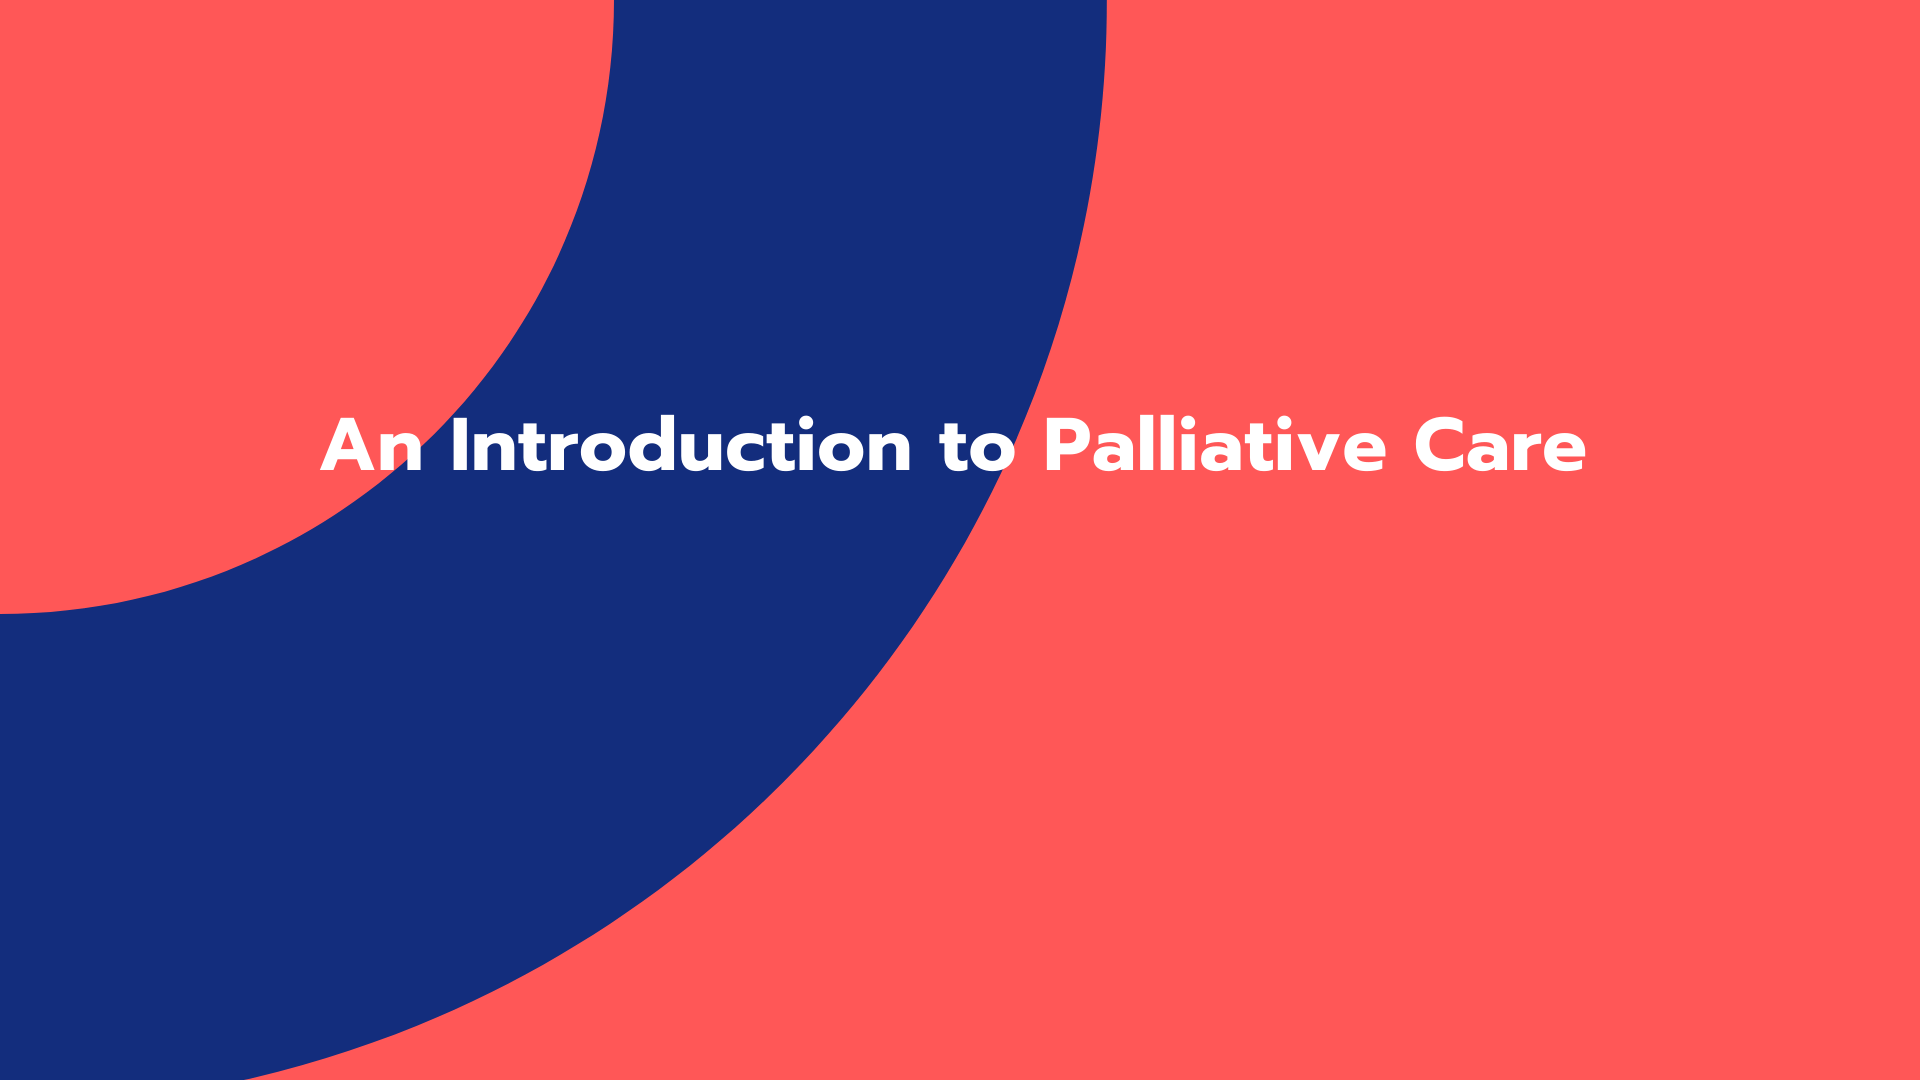 An Introduction to Palliative Care